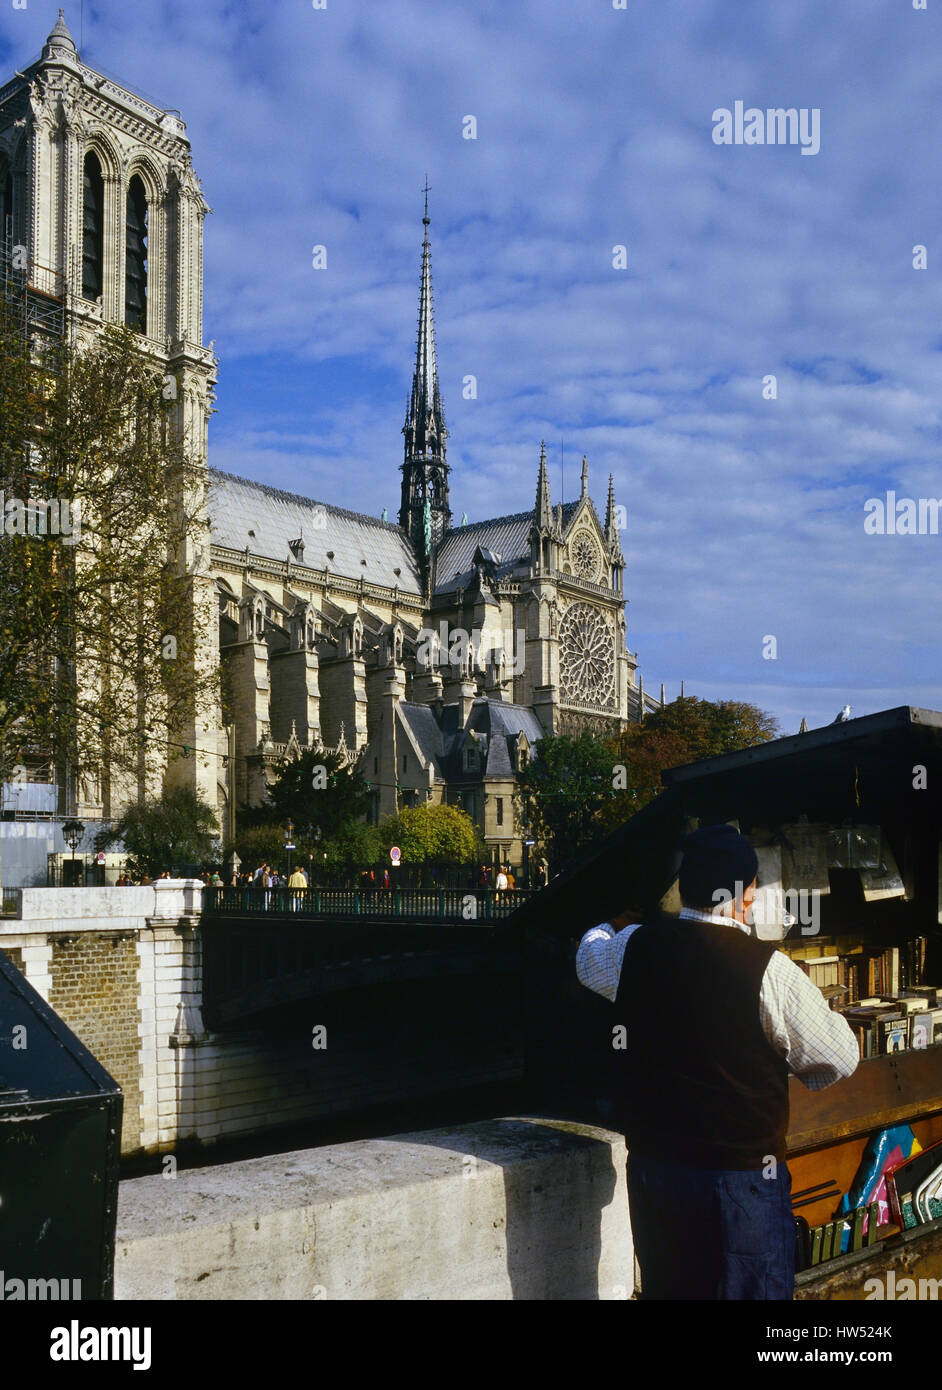 Book seller stalls on the Left Bank with view across the Seine River to Notre Dame Cathedral, Paris, France - Stock Image